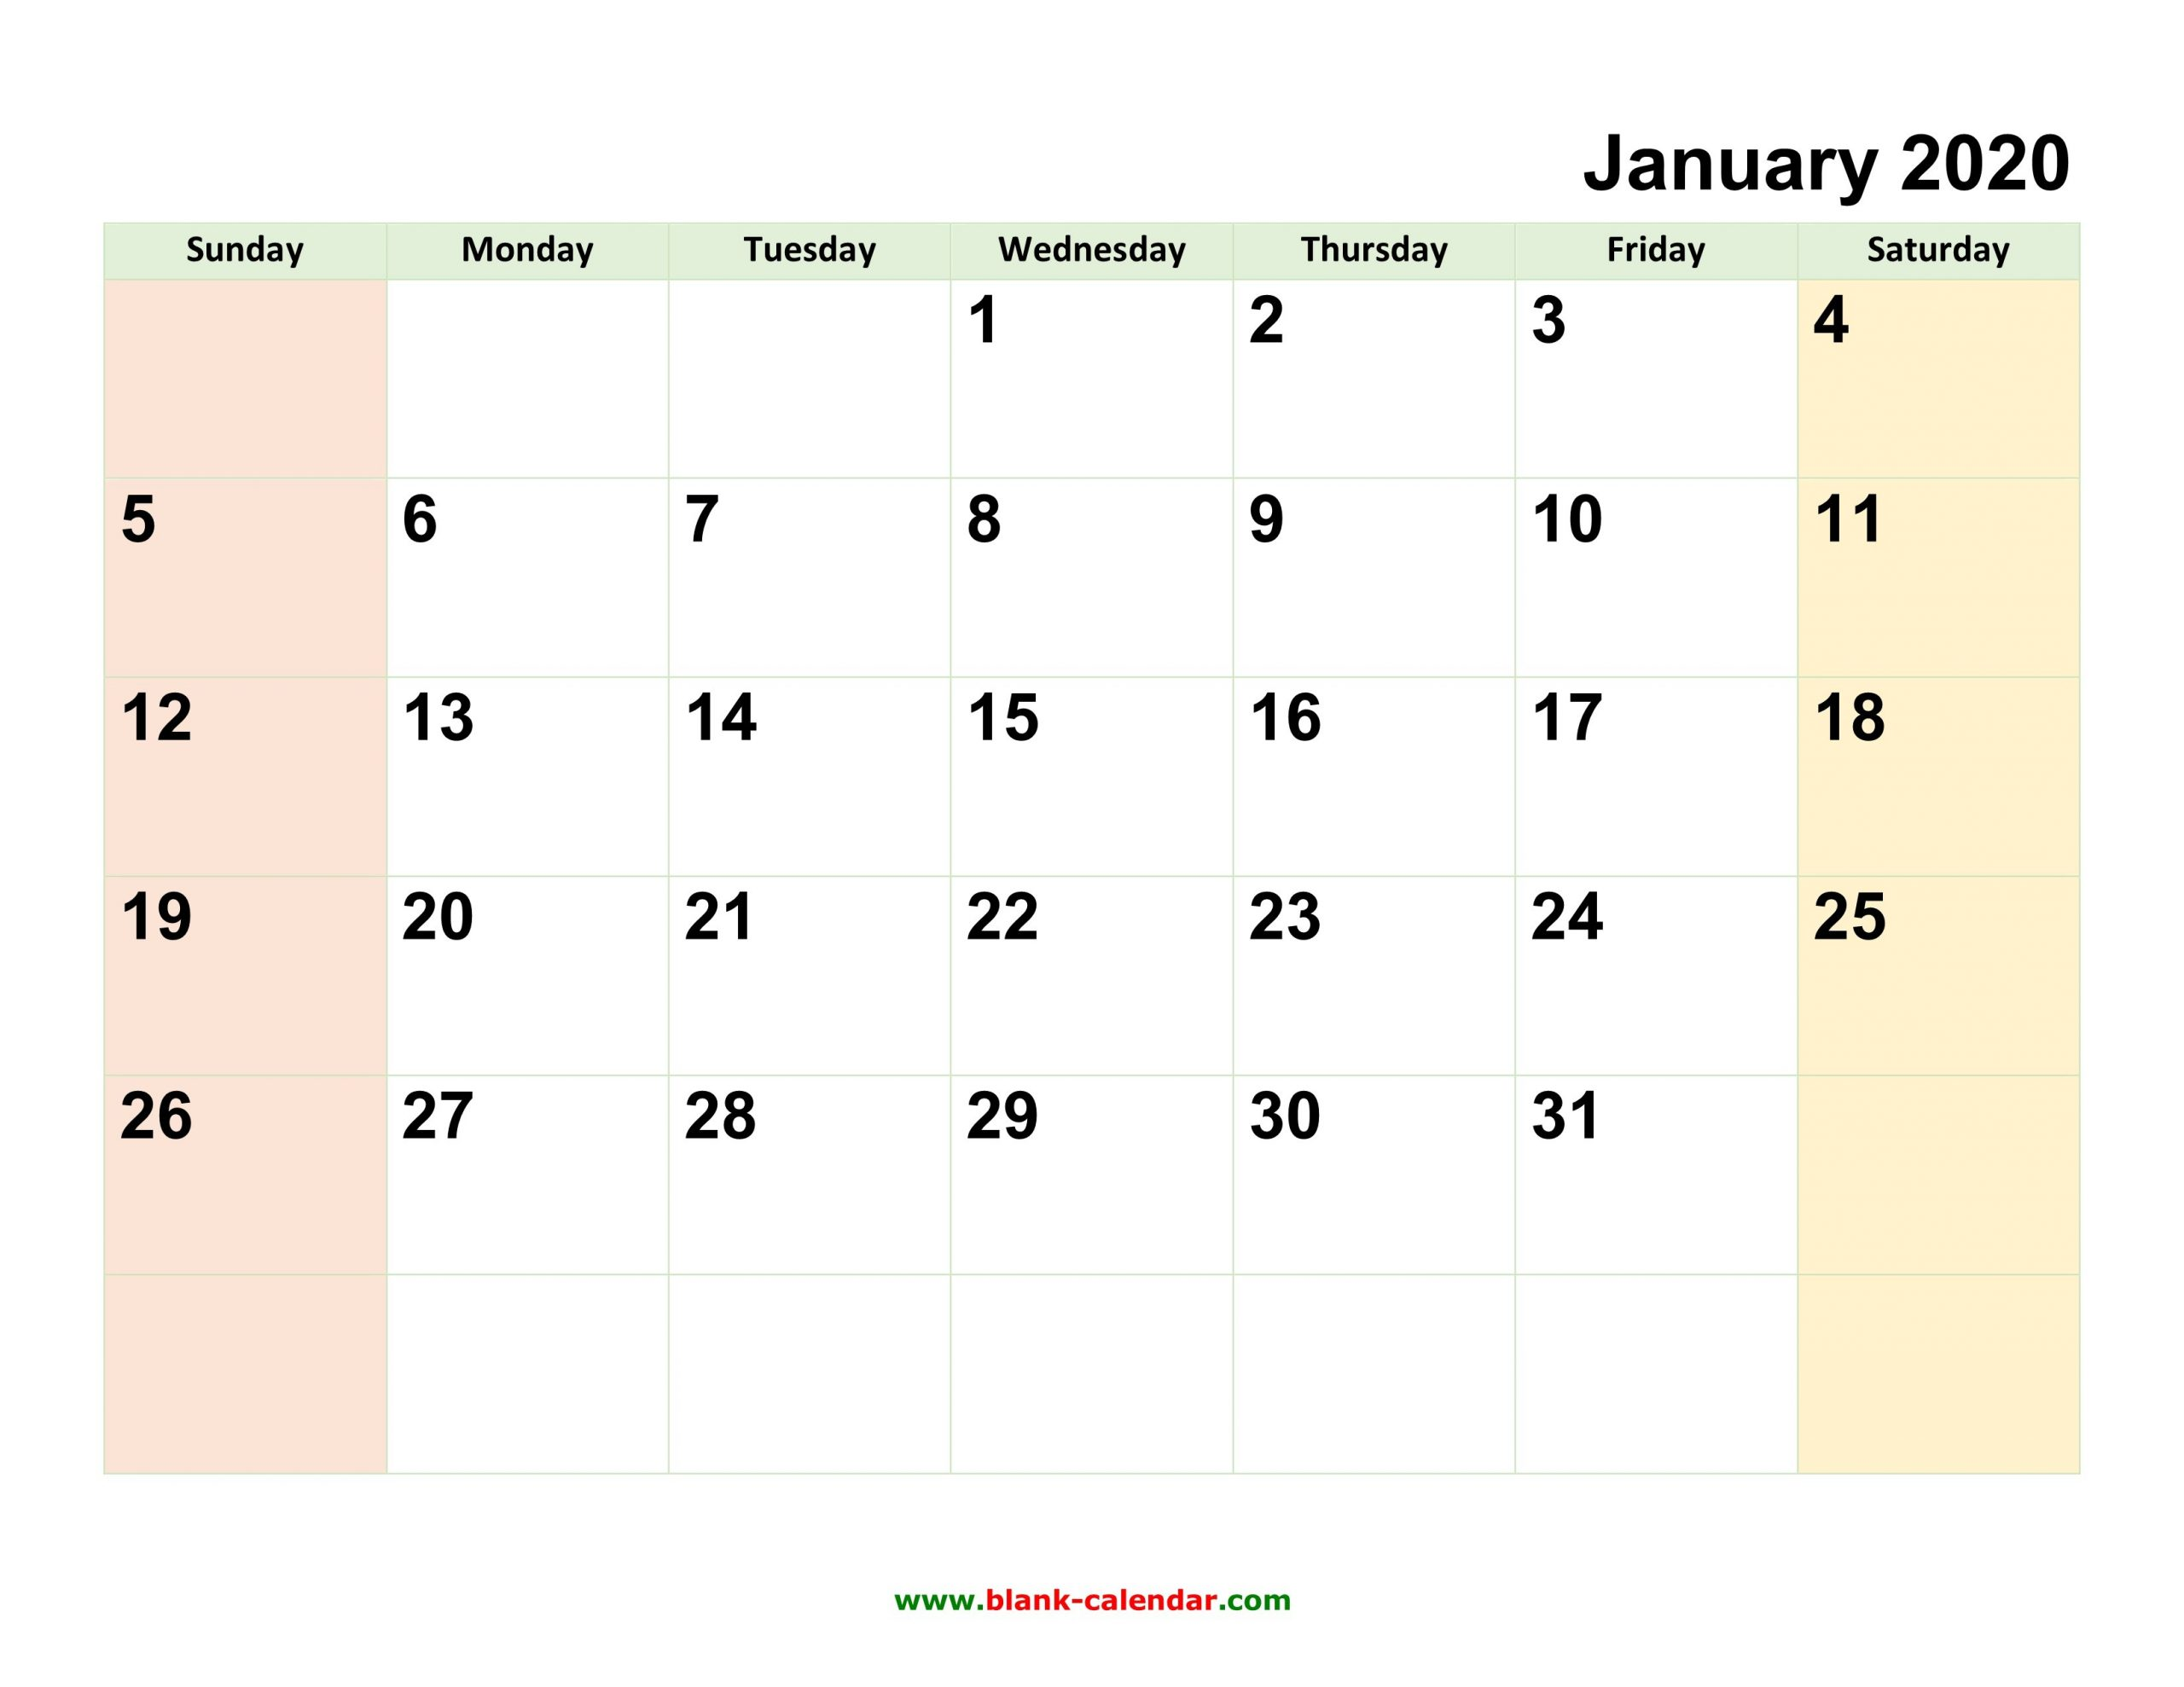 2020 Calendar You Can Edit | Calendar Template Printable Free Calendar You Can Edit